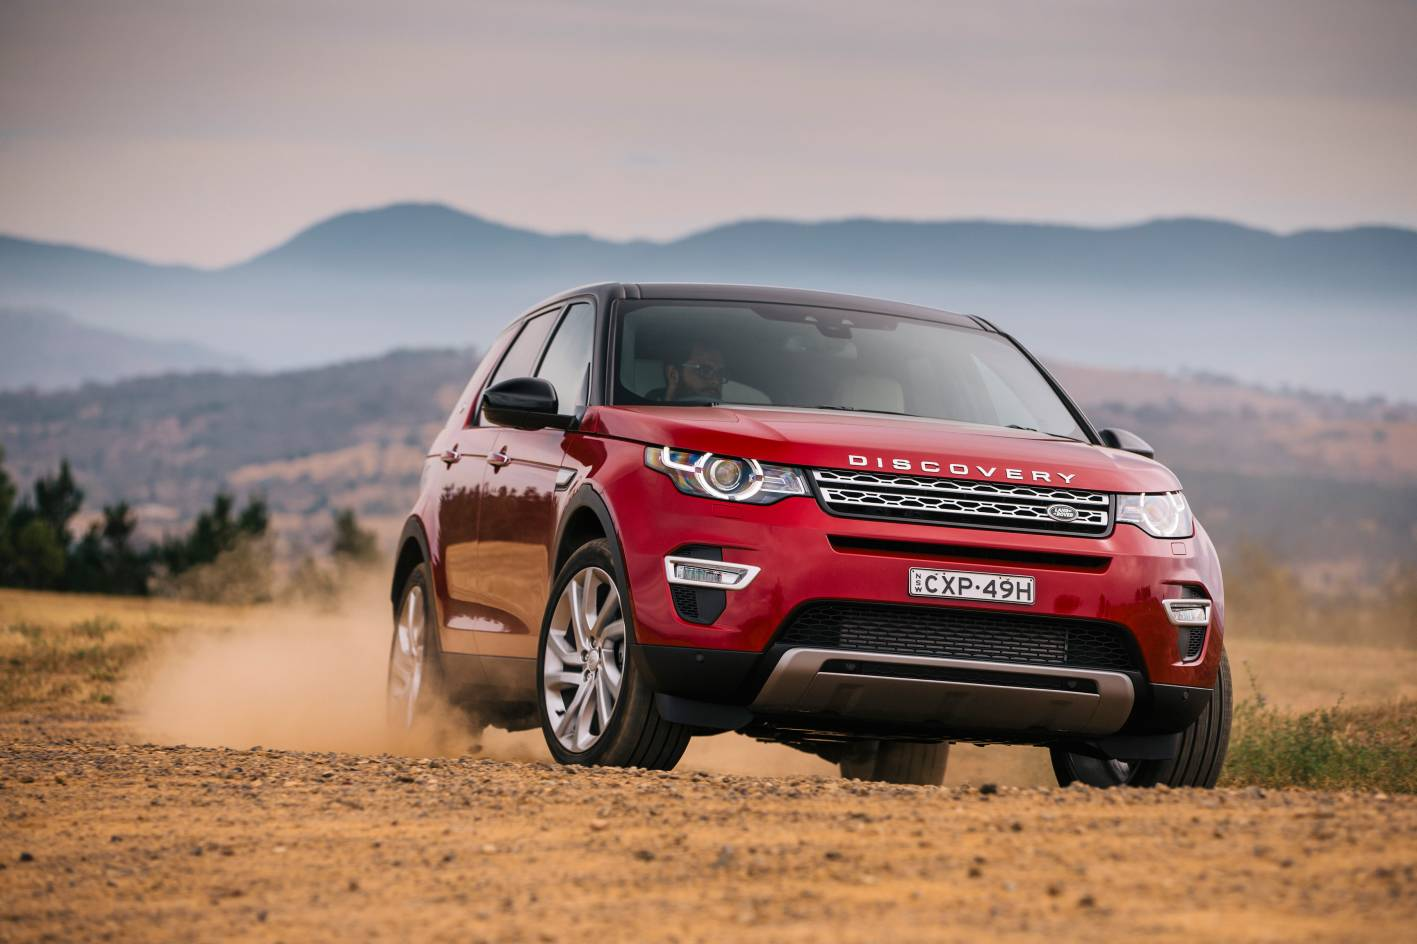 Discovery sport: It's got the look, but looks pretty shaky in terms of consumer fundamentals. Reliability is poor, ownership costs are high and up-front objective value is atrocious